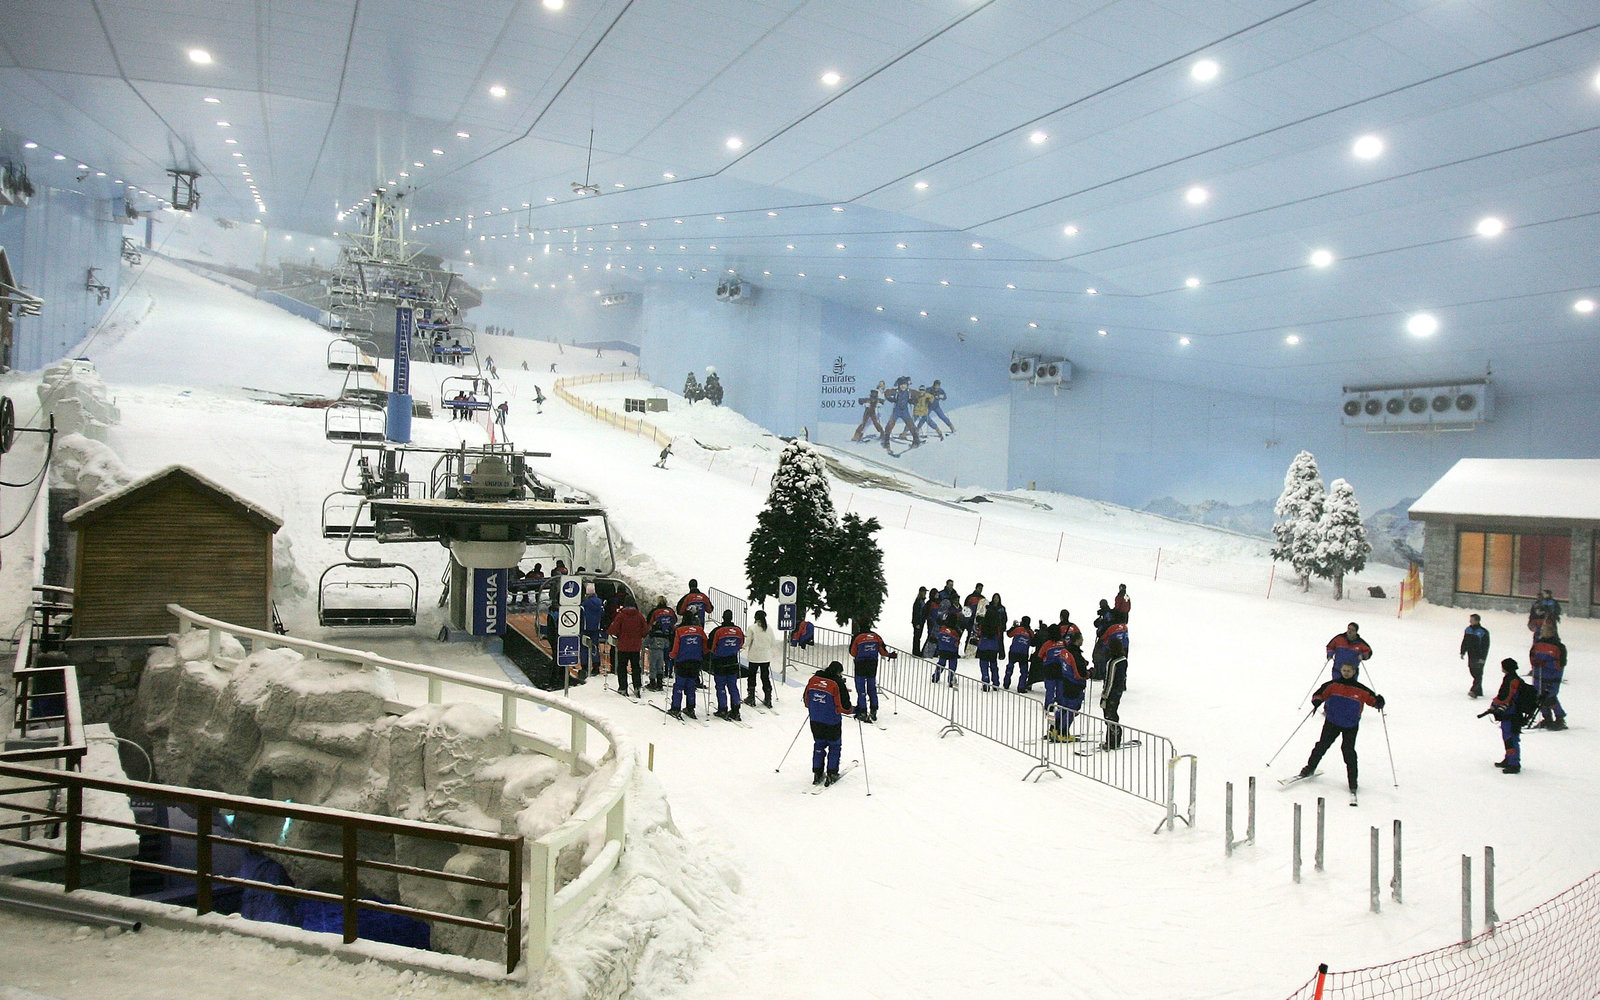 Dubai s indoor ski slopes are setting up sleeping tents